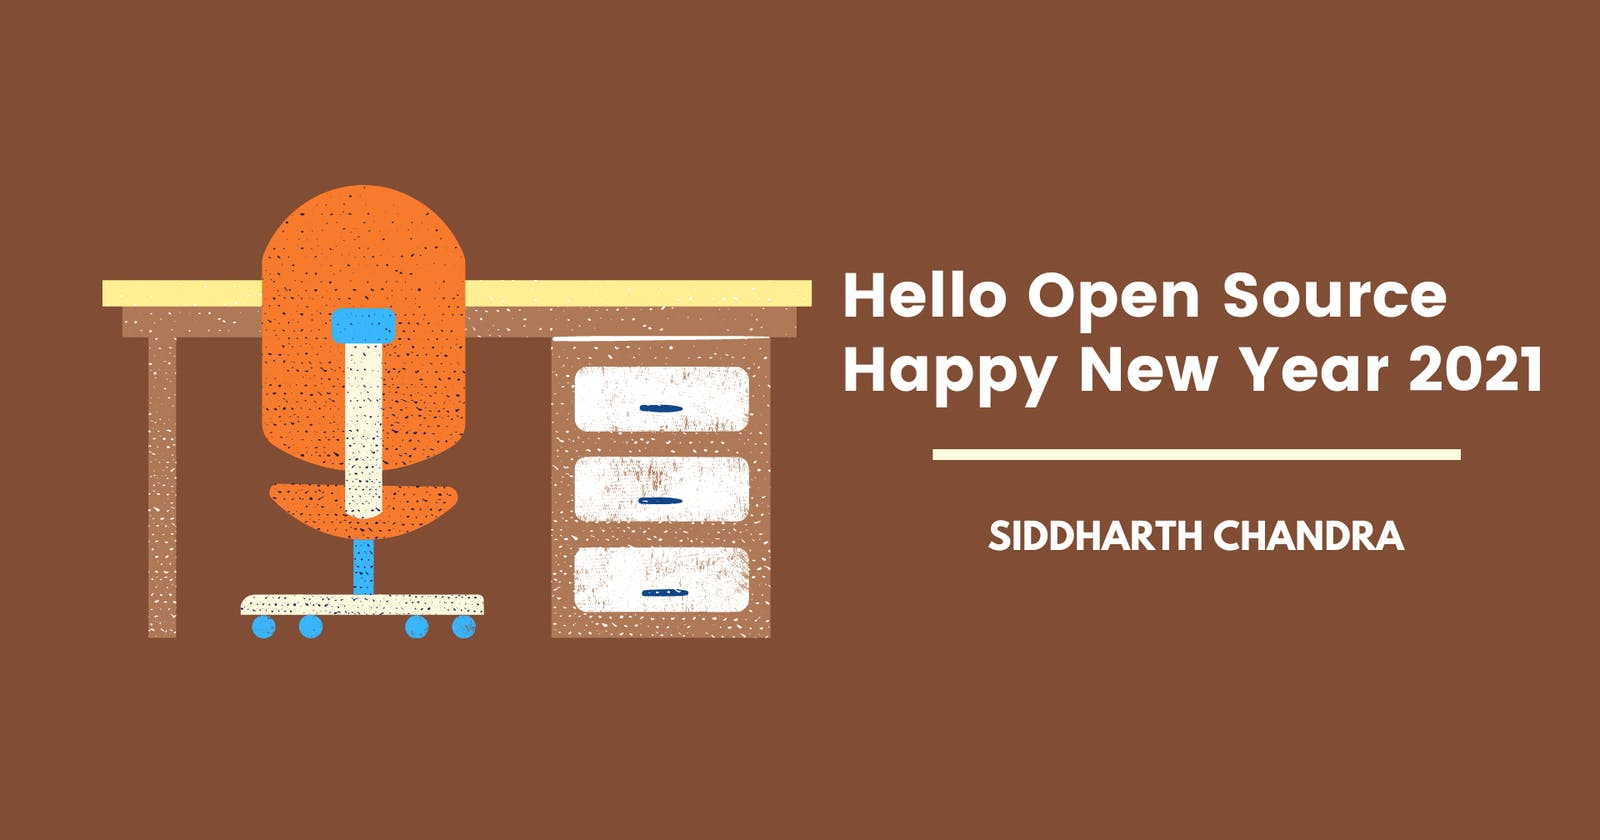 Hello Open Source and Happy New Year 2021 🎉